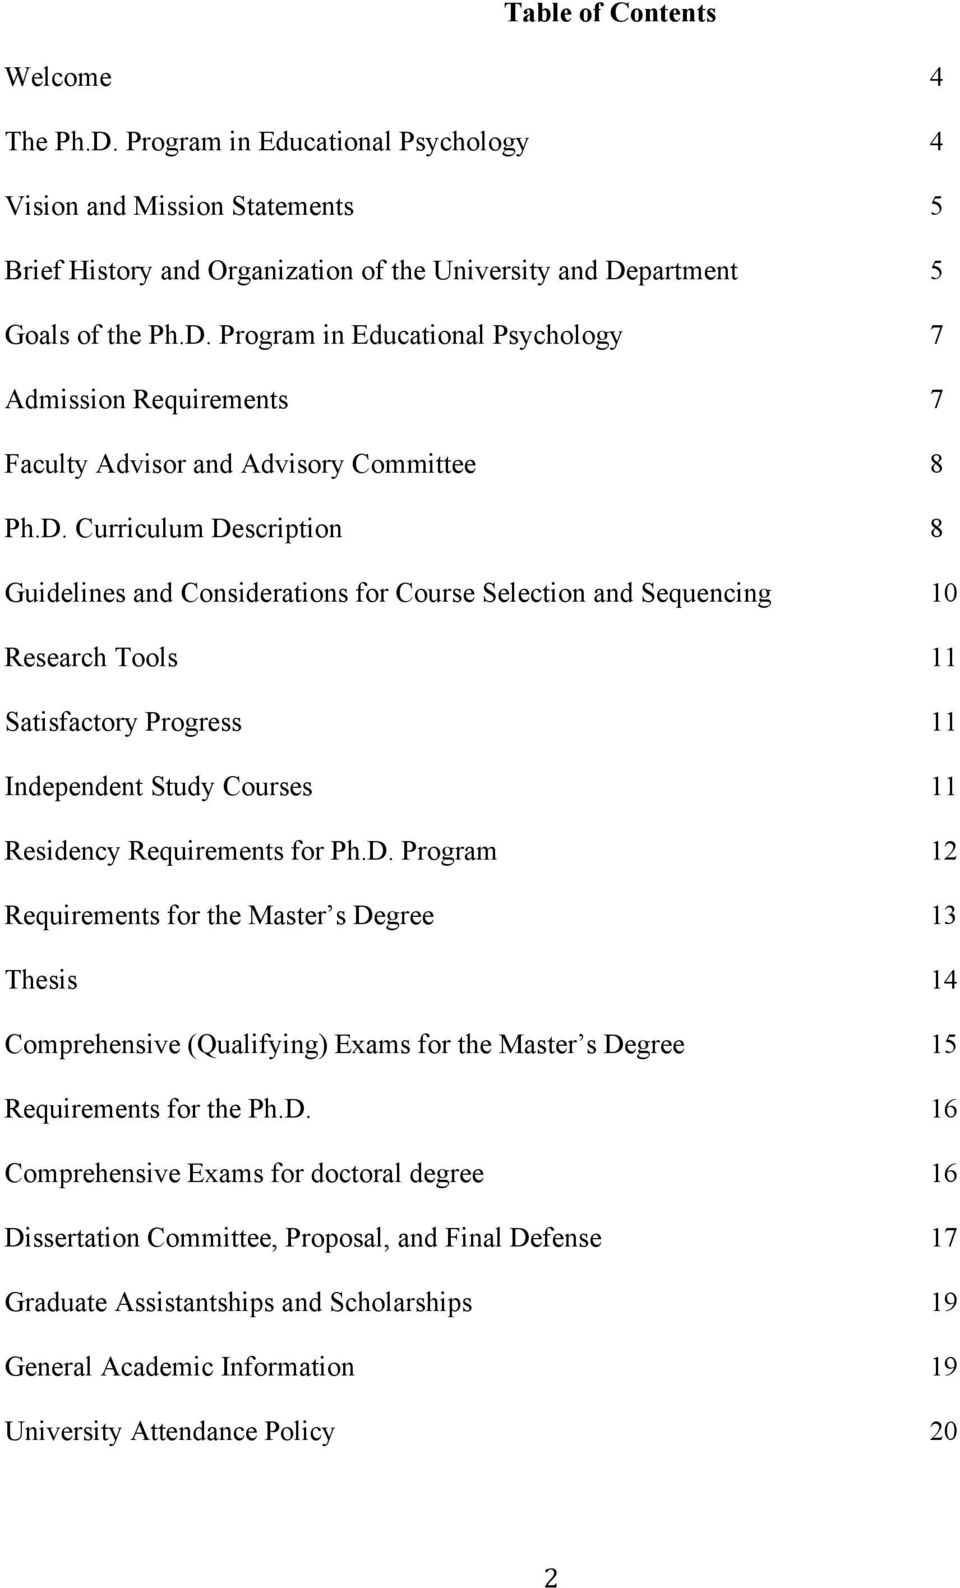 D. Program 12 Requirements for the Master s Degree 13 Thesis 14 Comprehensive (Qualifying) Exams for the Master s Degree 15 Requirements for the Ph.D. 16 Comprehensive Exams for doctoral degree 16